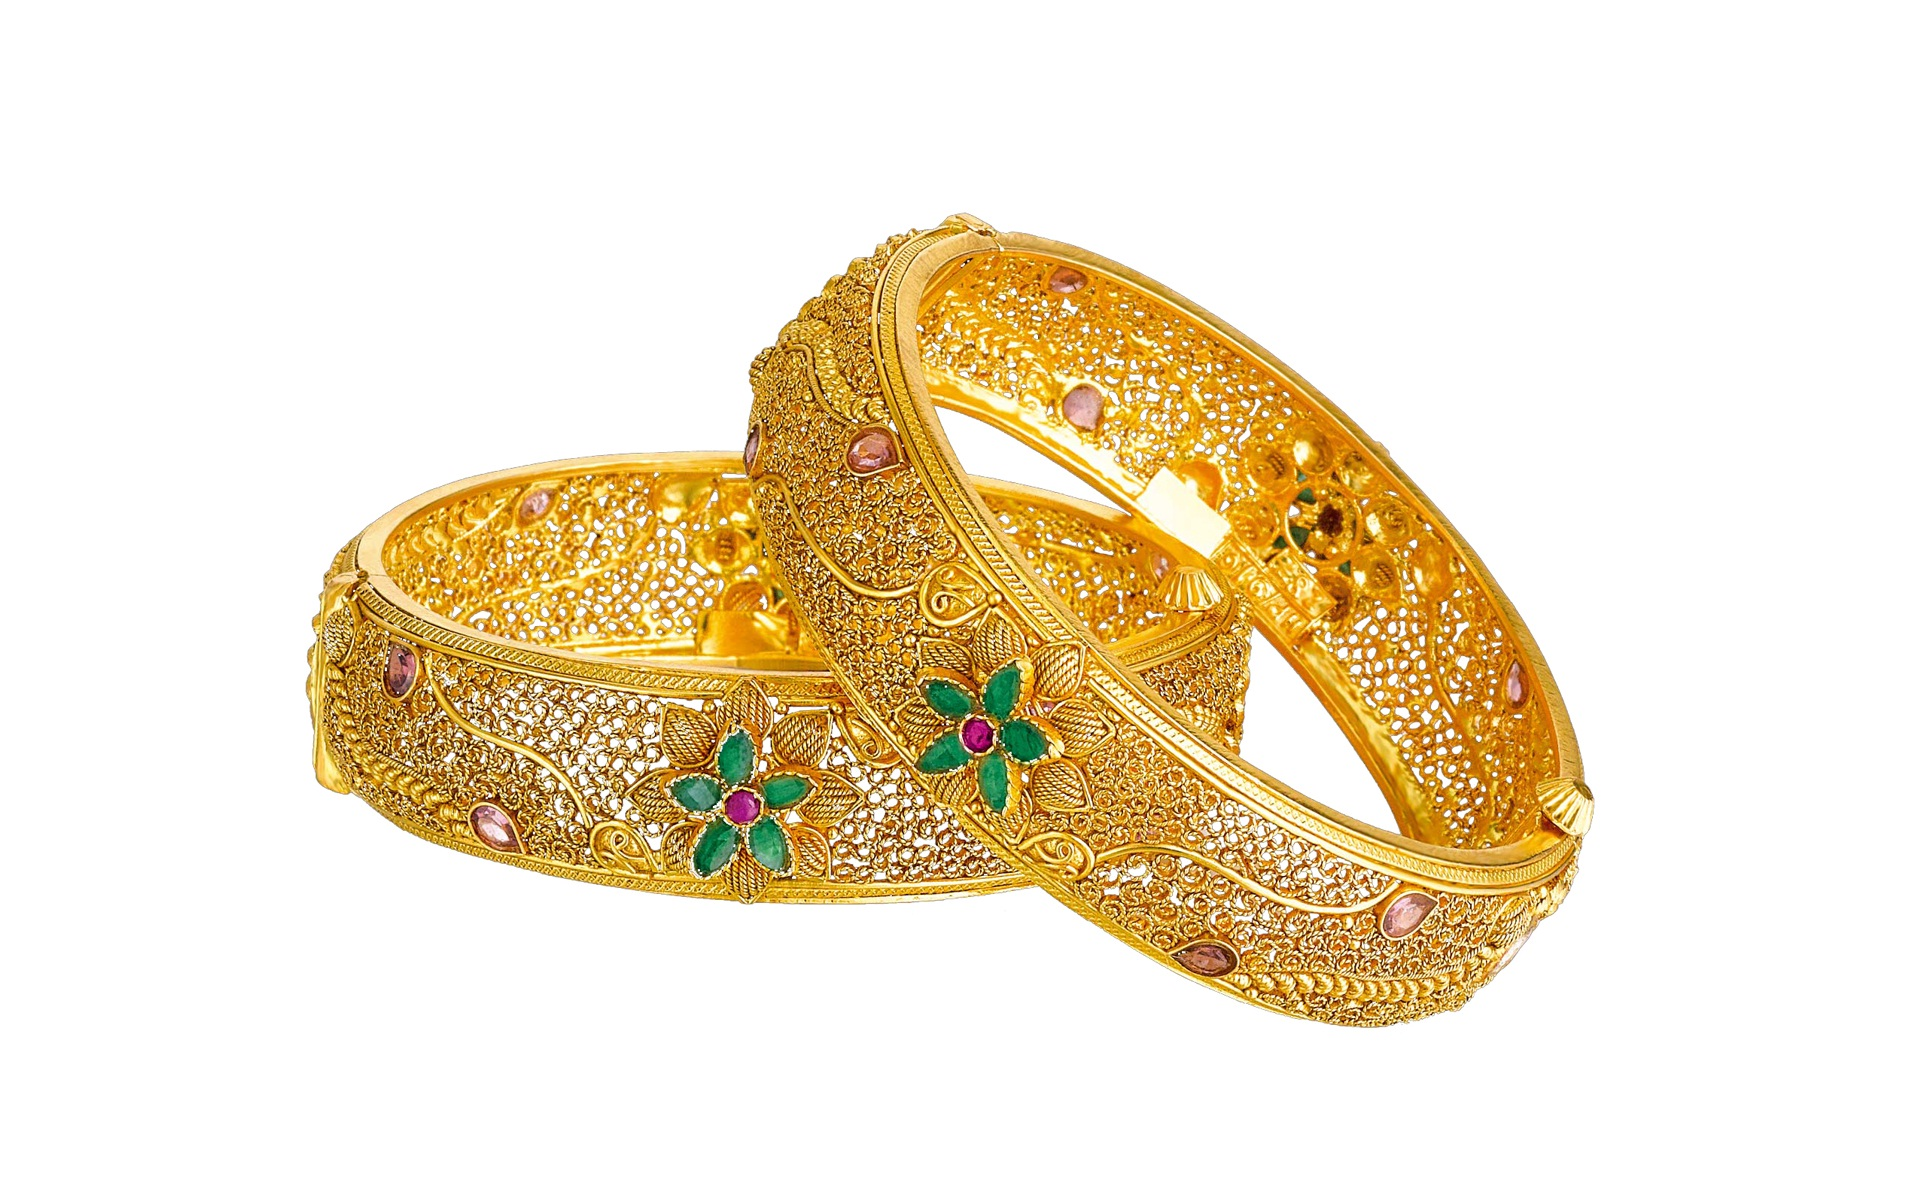 Gold Jewellery Designs Wallpapers